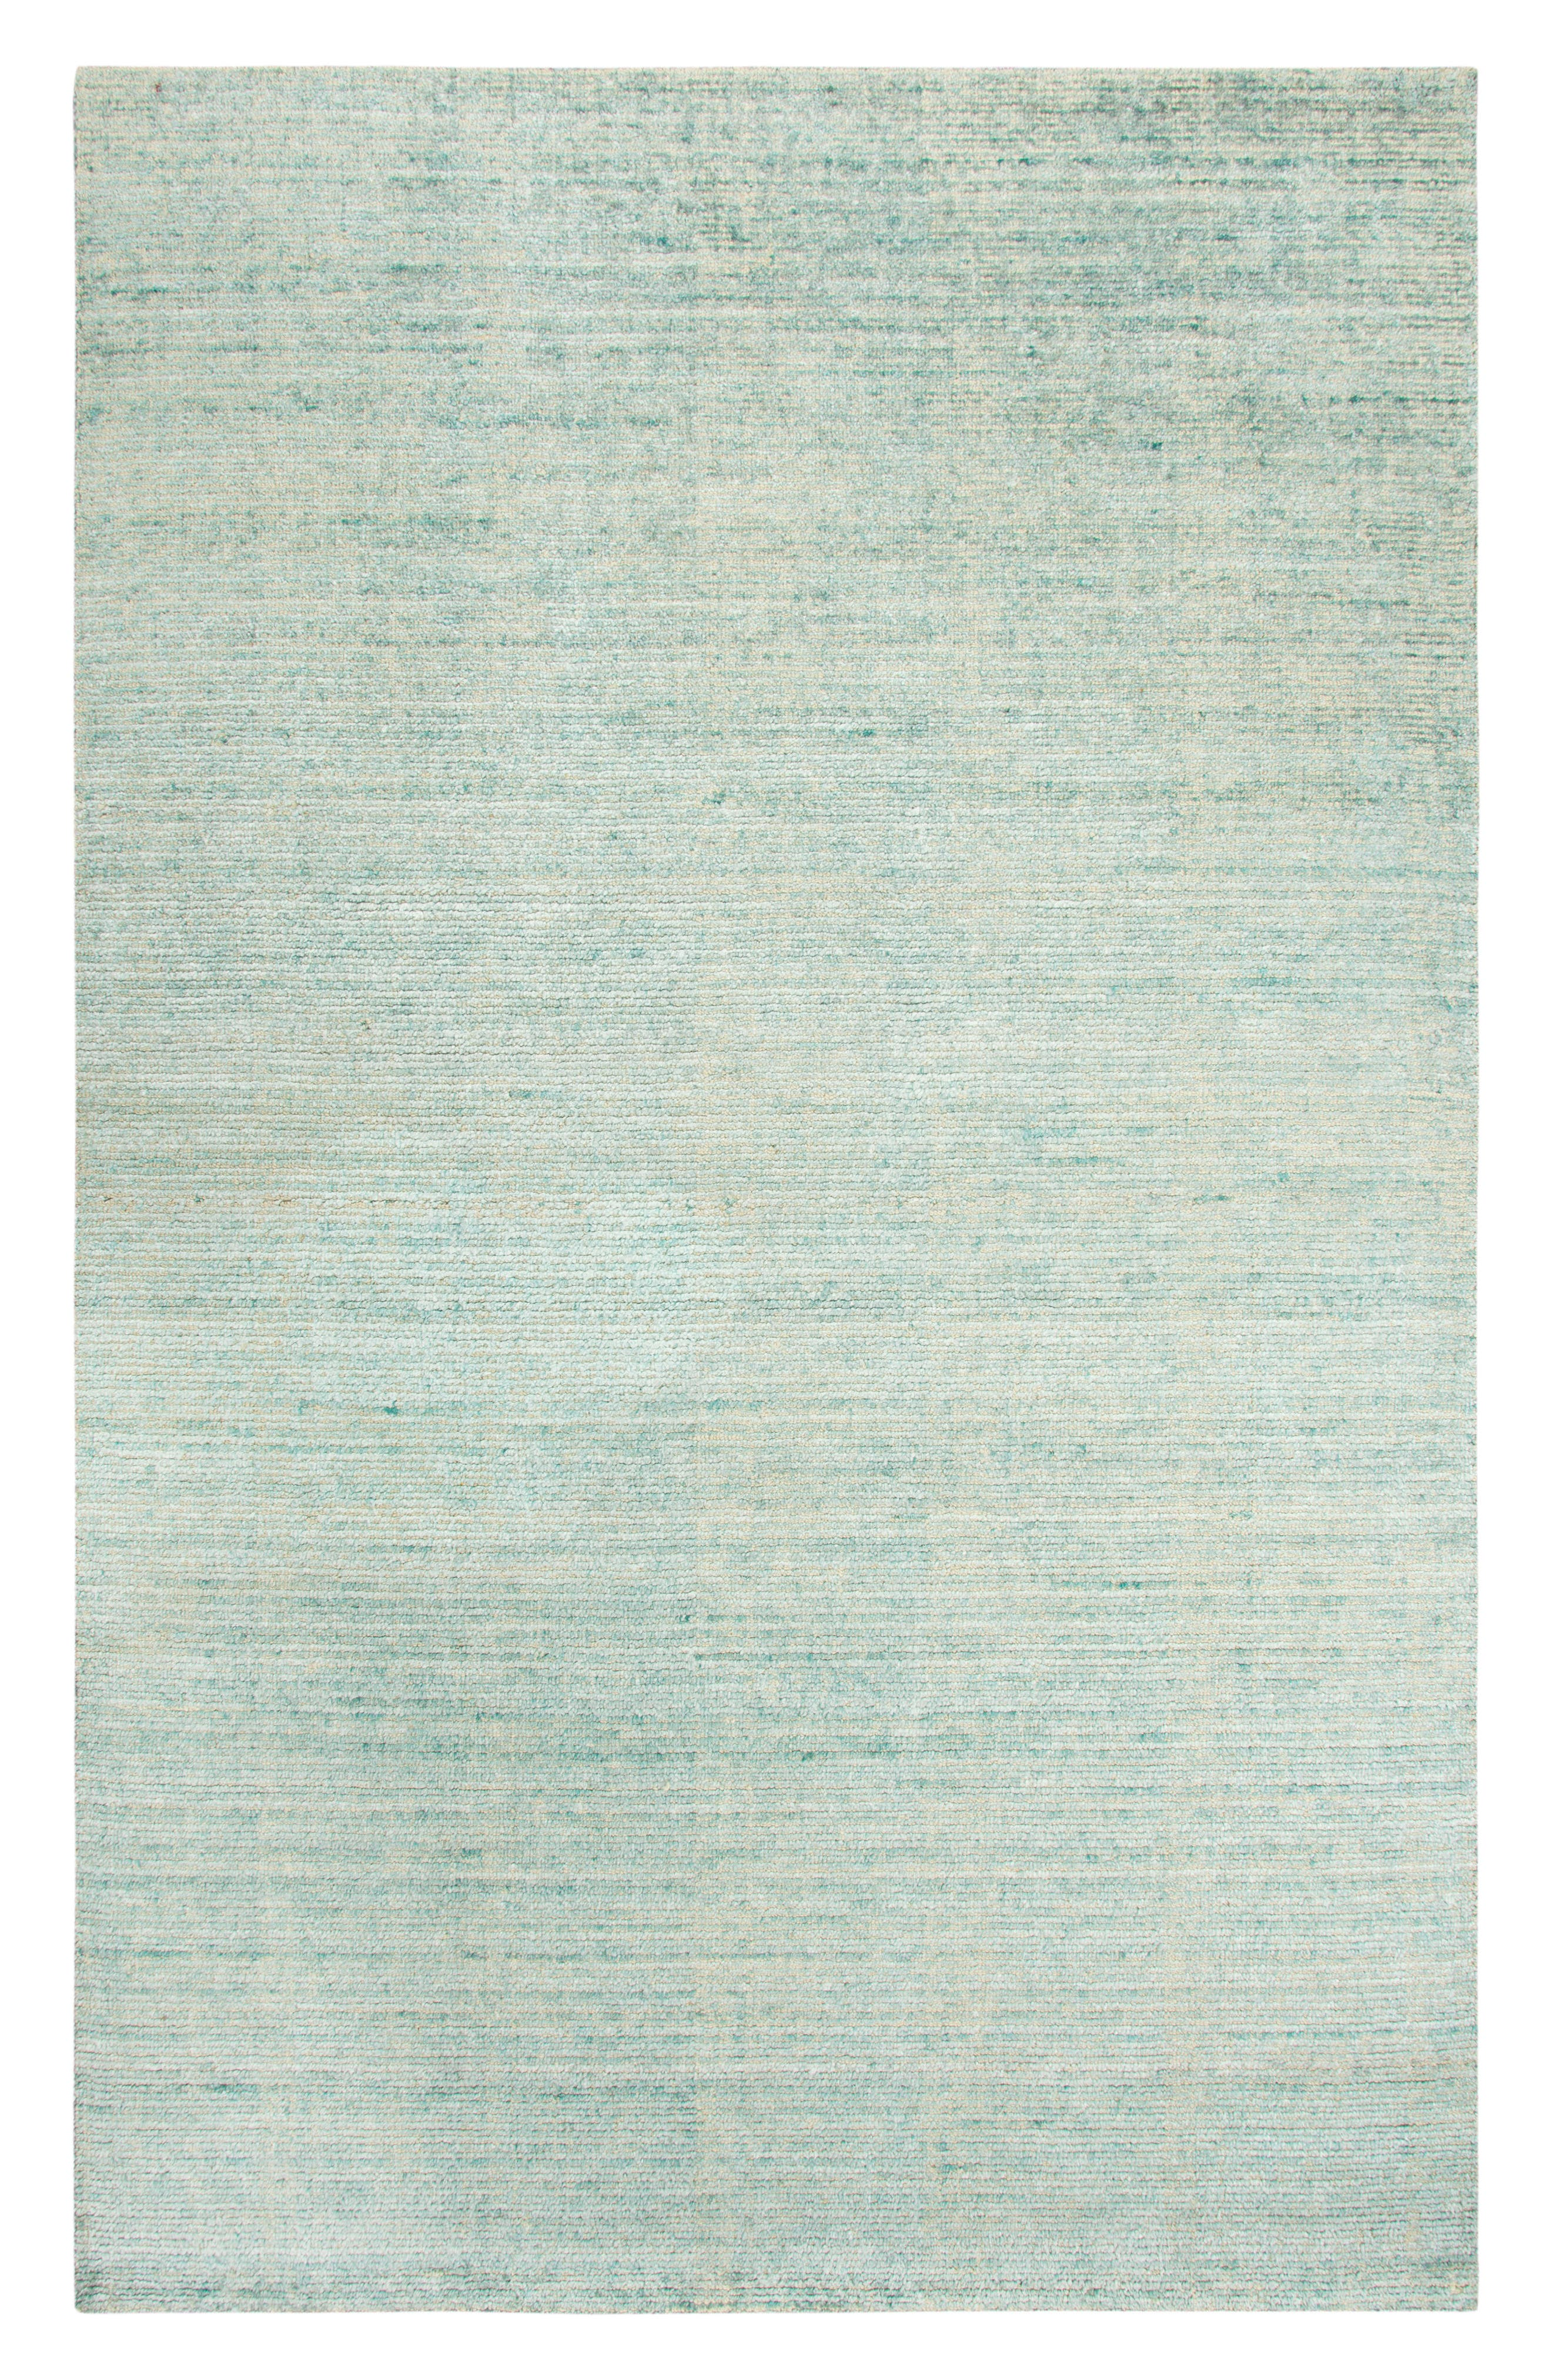 Alternate Image 1 Selected - Rizzy Home Grand Haven Loisa Rug